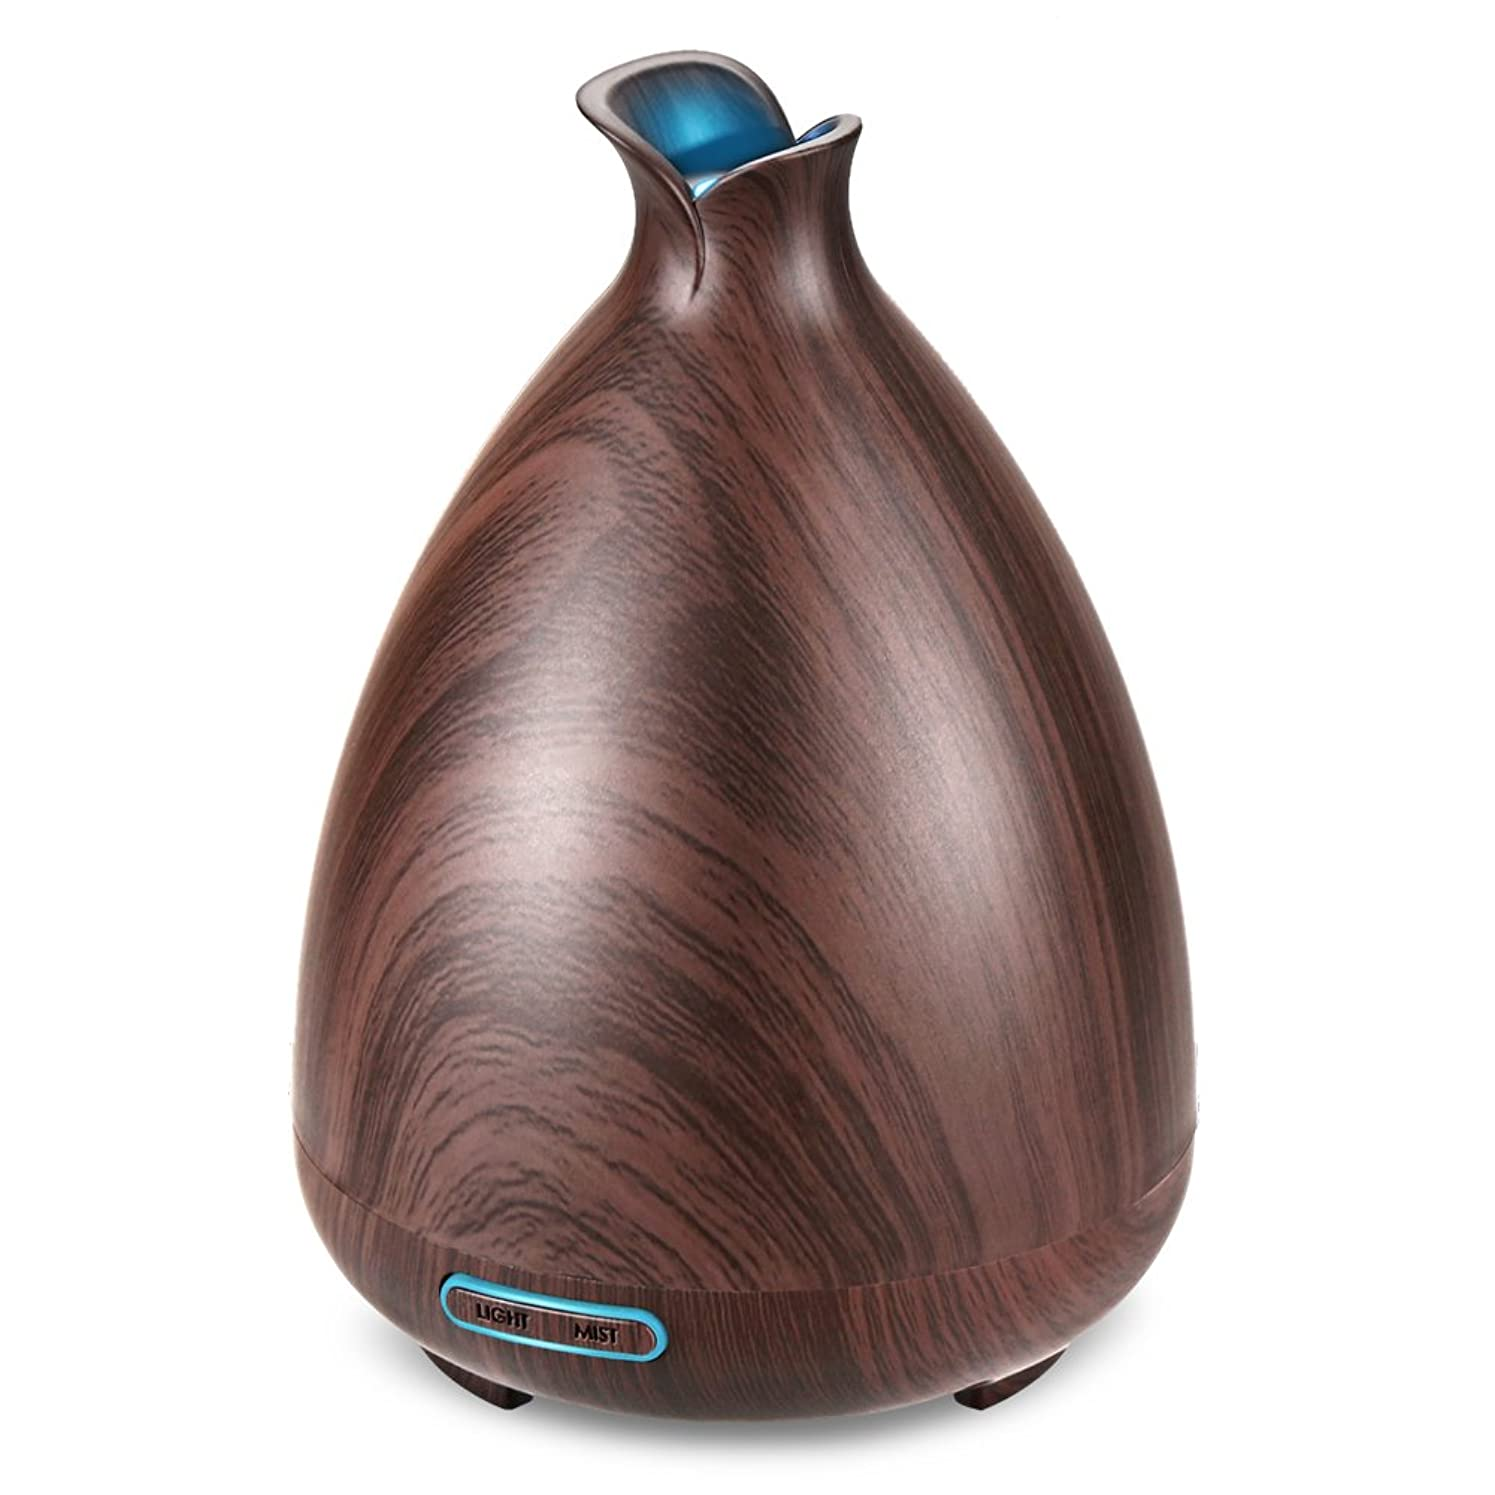 ベンチ切り離す敬な(Brown) - URPOWER Essential Oil Diffuser 130ml Wood Grain Ultrasonic Aromatherapy Oil Diffuser with Adjustable Mist Mode Waterless Auto Shut-off humidifier and 7 Colour Changing LED Lights for Home Office Baby